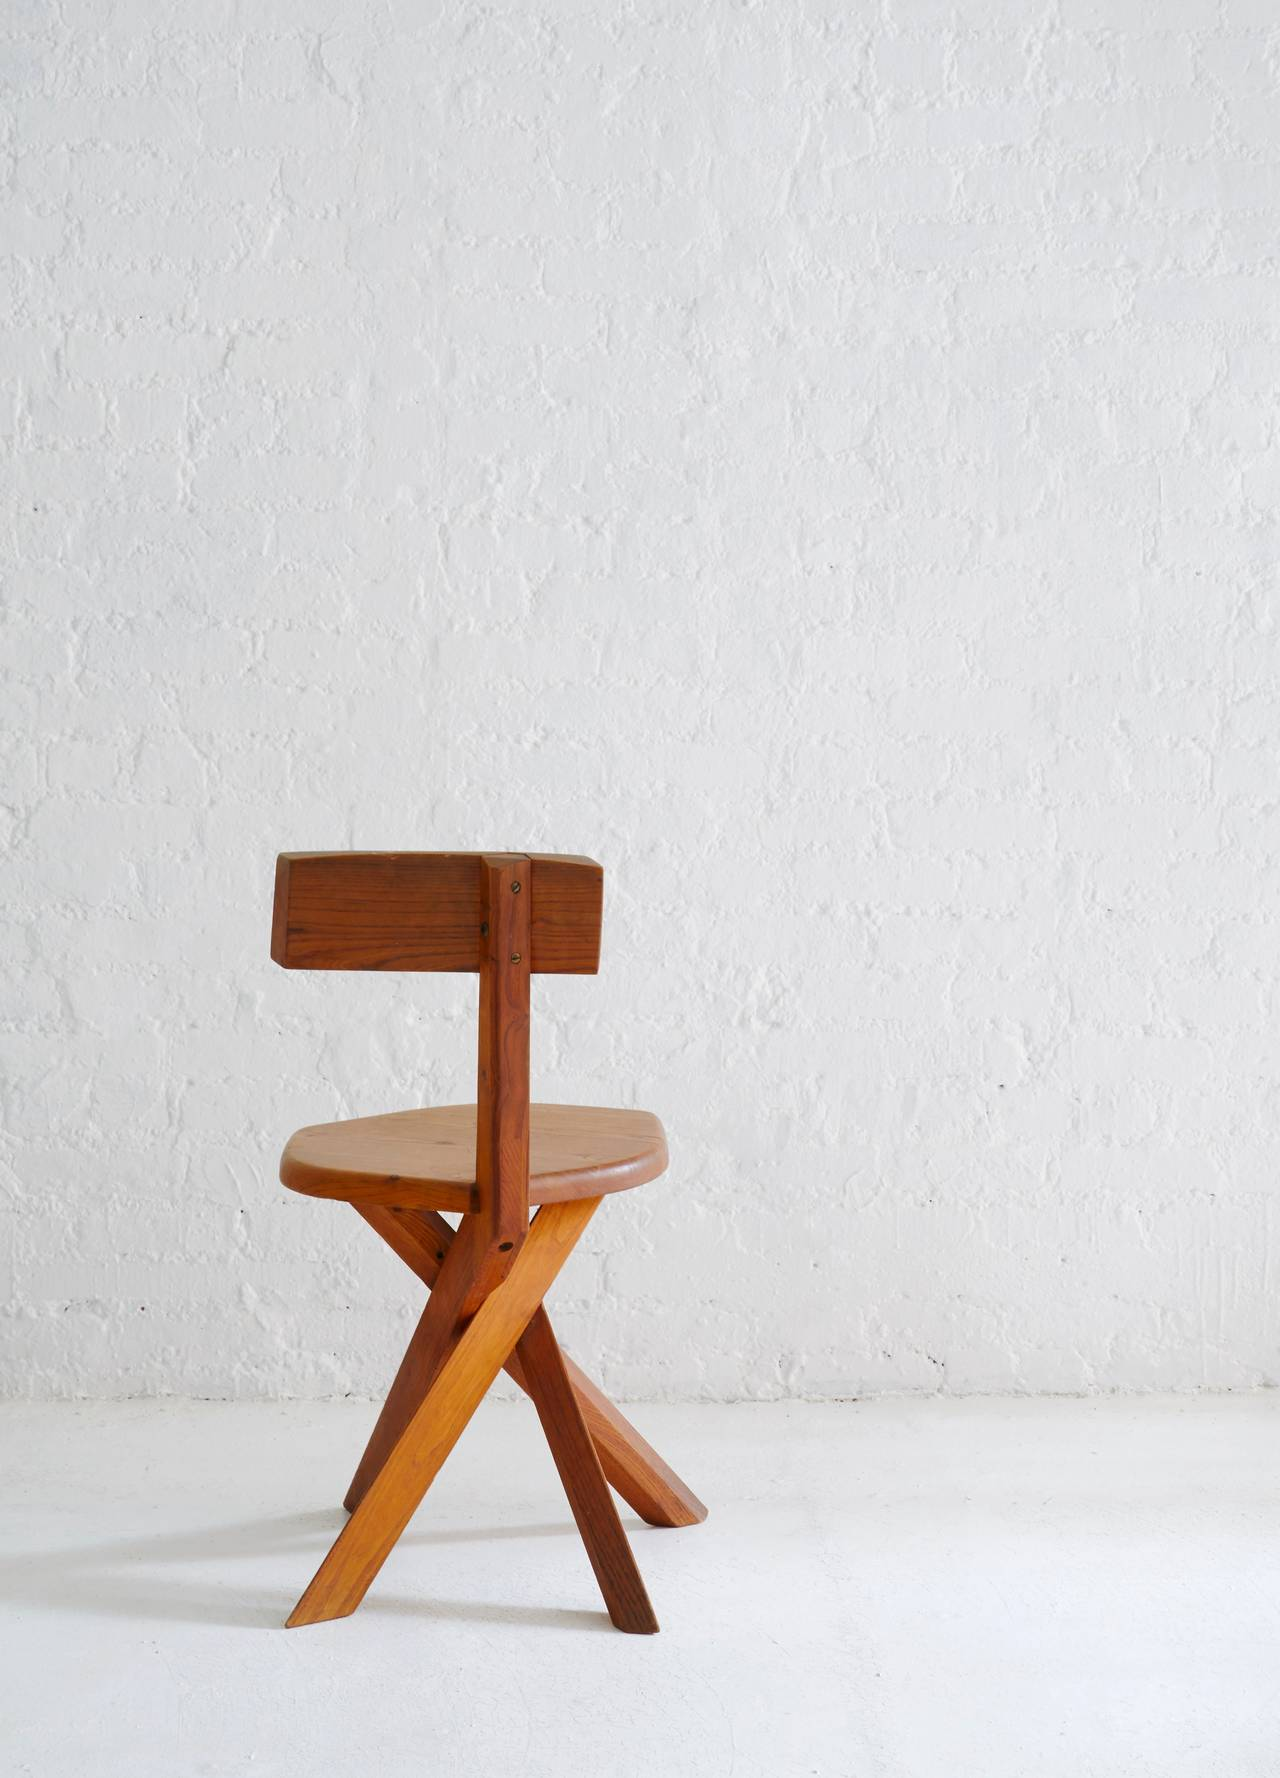 S34 Model Chair by Pierre Chapo In Excellent Condition For Sale In Brooklyn, NY